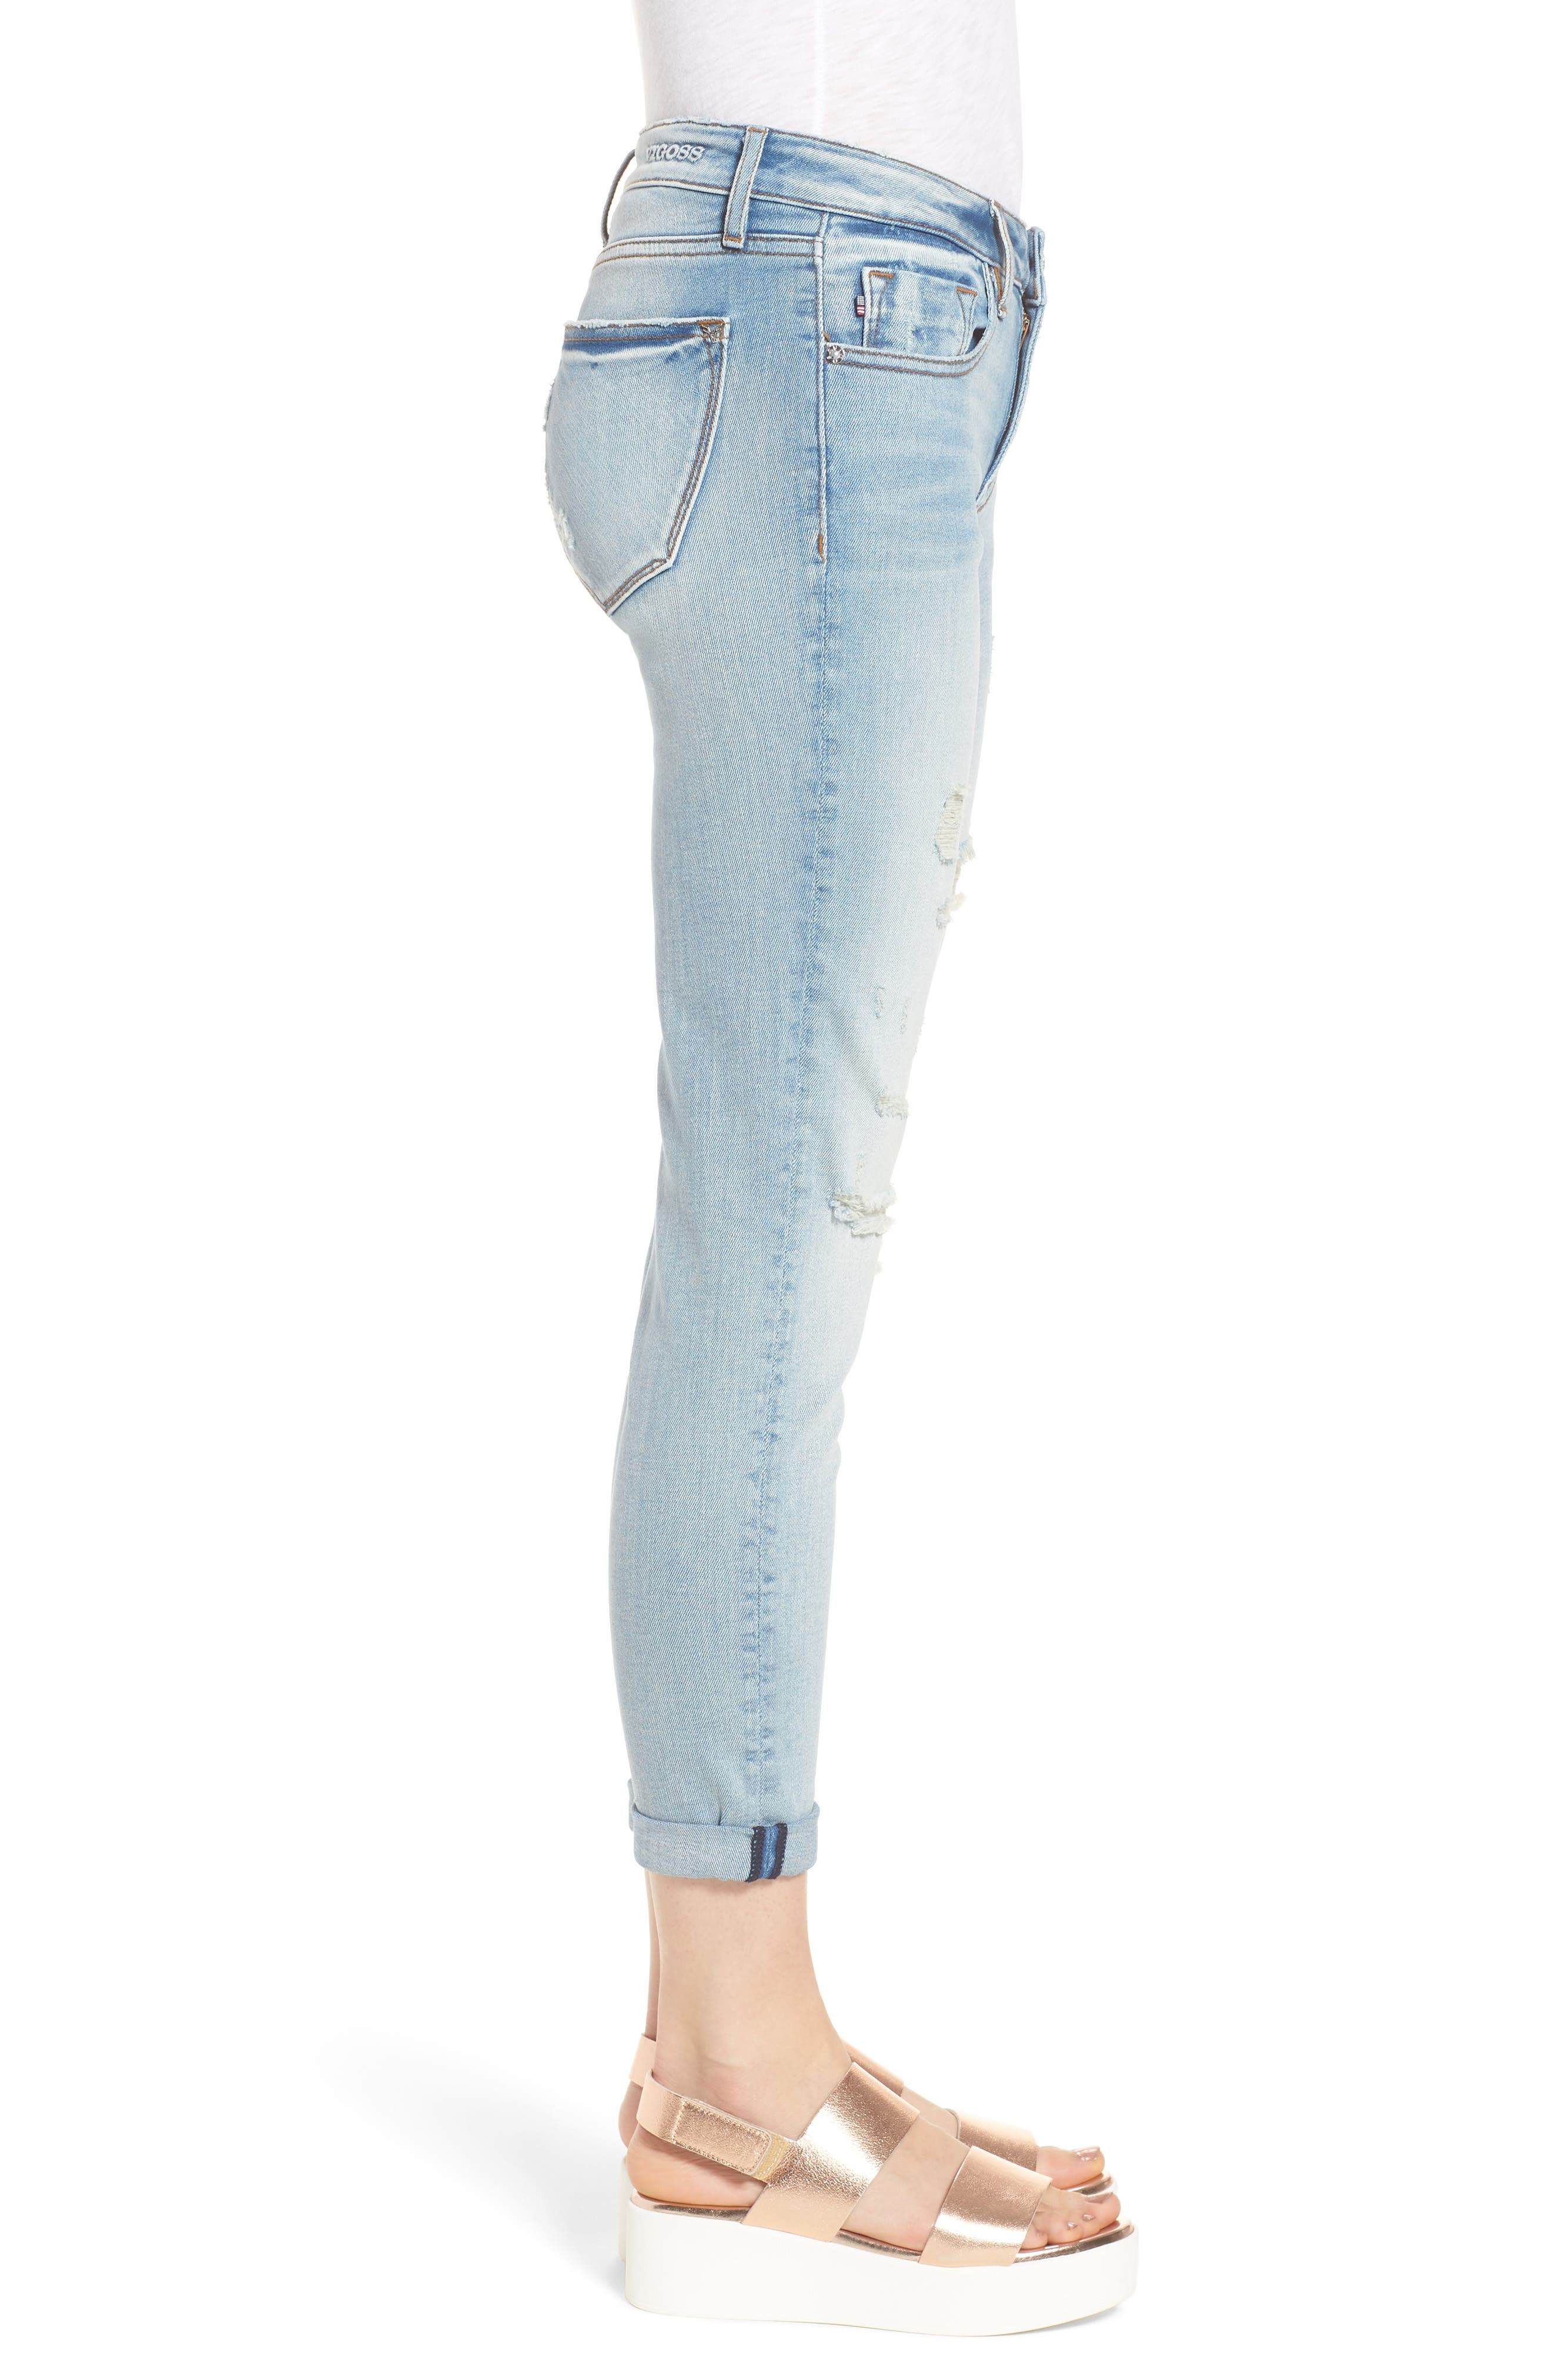 Thompson Tomboy Distressed Skinny Jeans,                             Alternate thumbnail 3, color,                             Light Wash